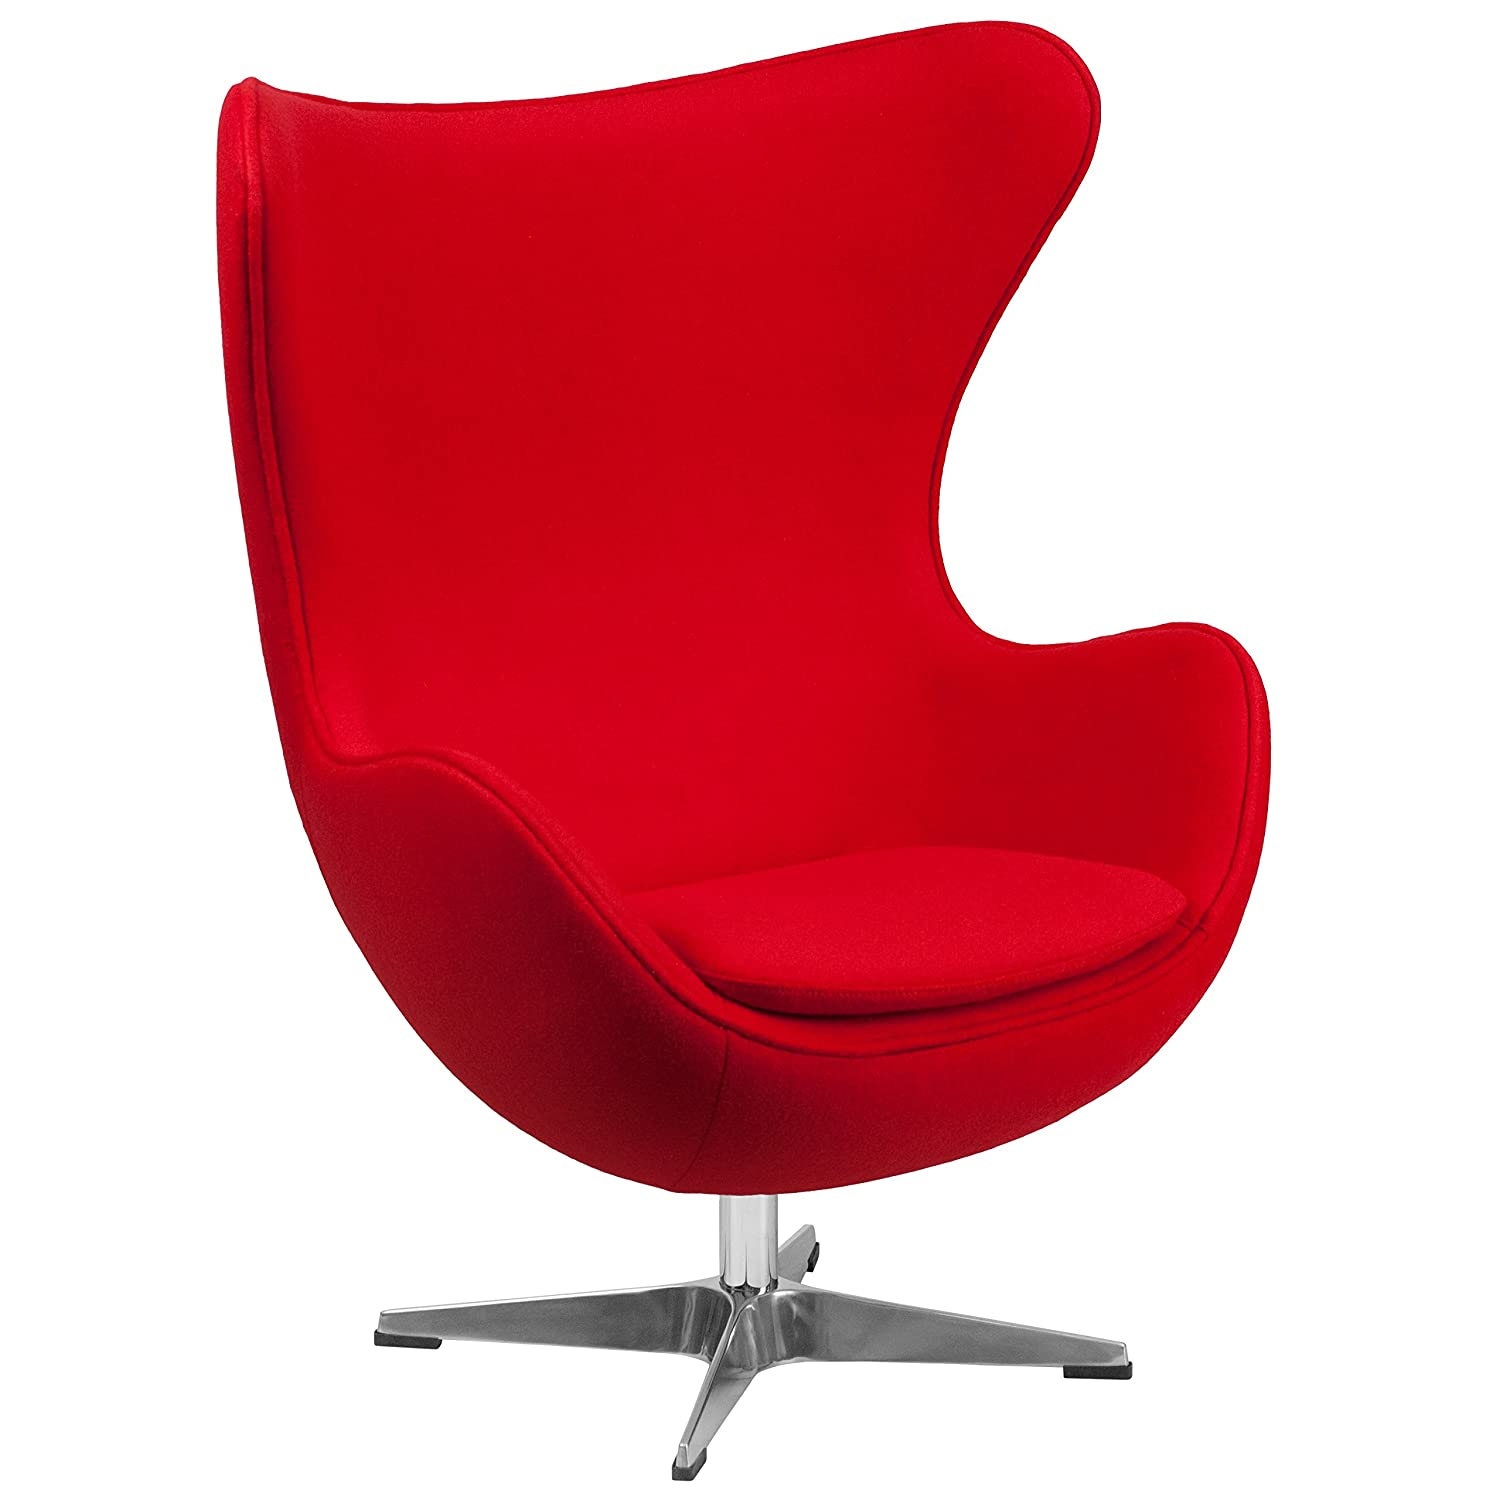 Design Egg Chair amazon com flash furniture red wool fabric egg chair with tilt lock mechanism kitchen dining